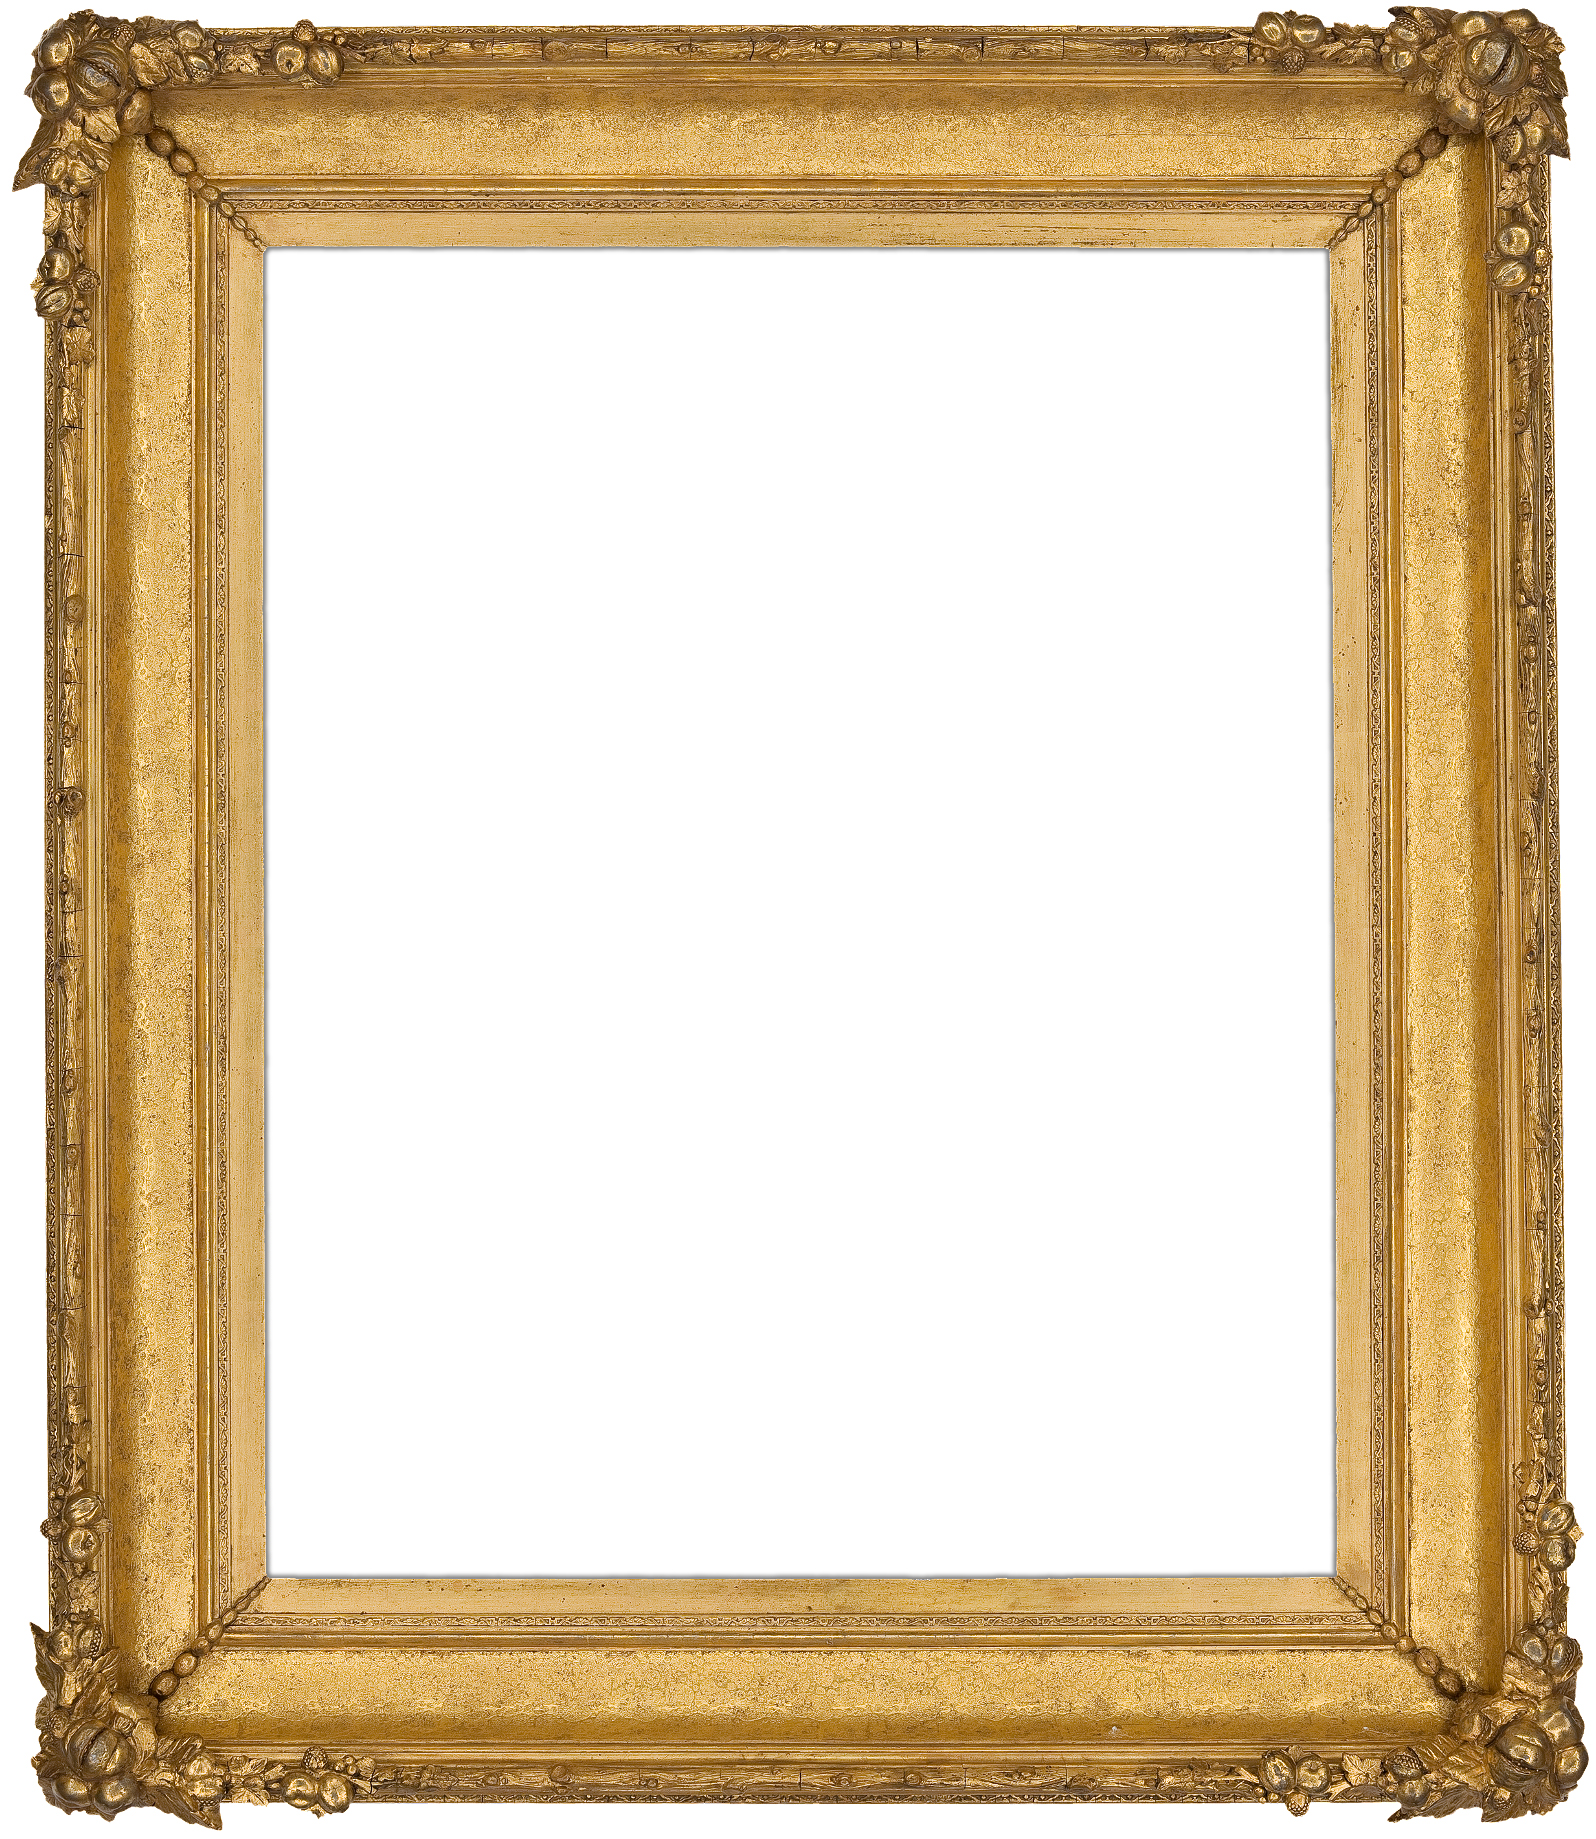 Antique Picture Frames Part - 37: Fruit Clusters Accent The Corners Of This Unique Mid- To Late 19th Century  American Gilt Composition Cove Frame. U201c